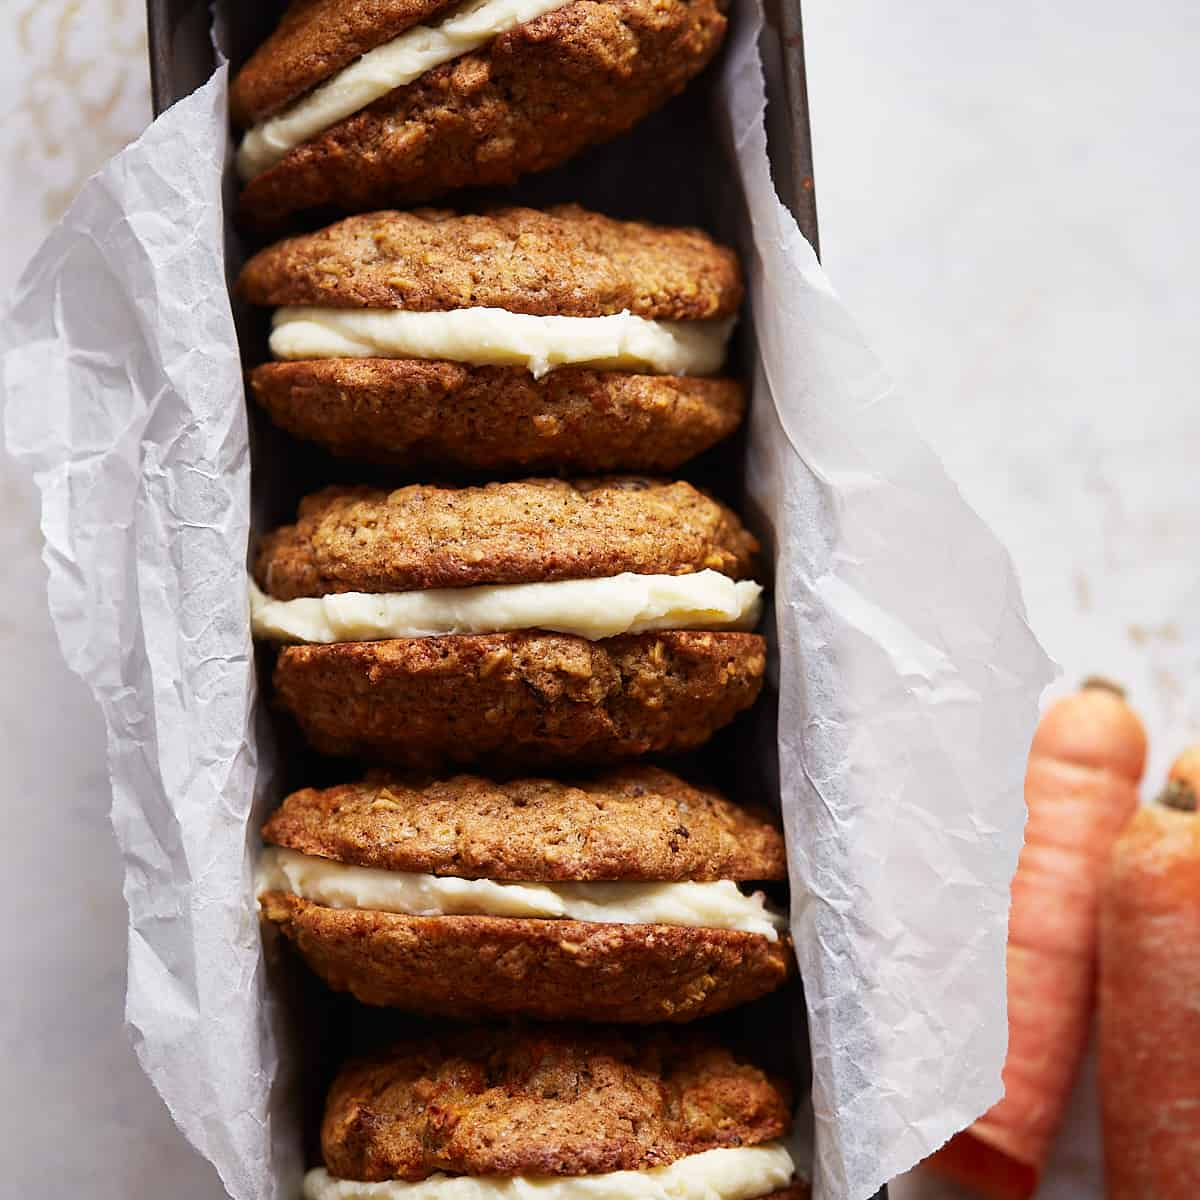 Carrot cookie sandwiches in a baking pan